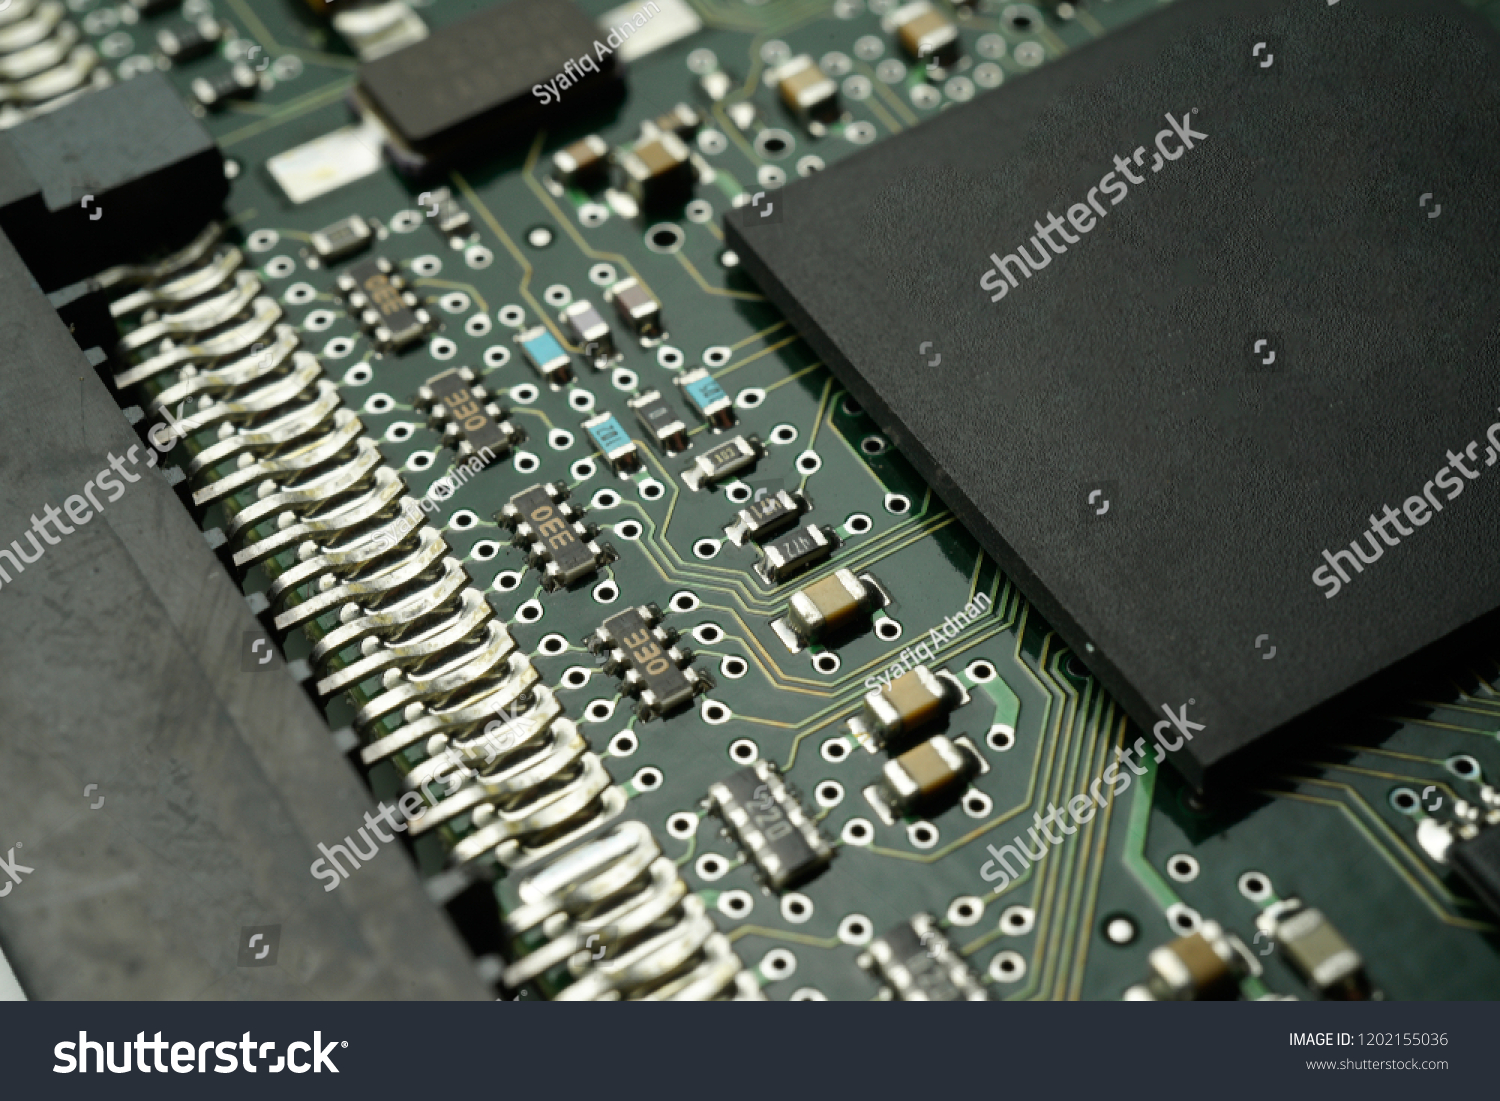 Printed Circuit Board Smd Ic Mounted Stock Photo Edit Now Photos Images Pictures Shutterstock With Part On